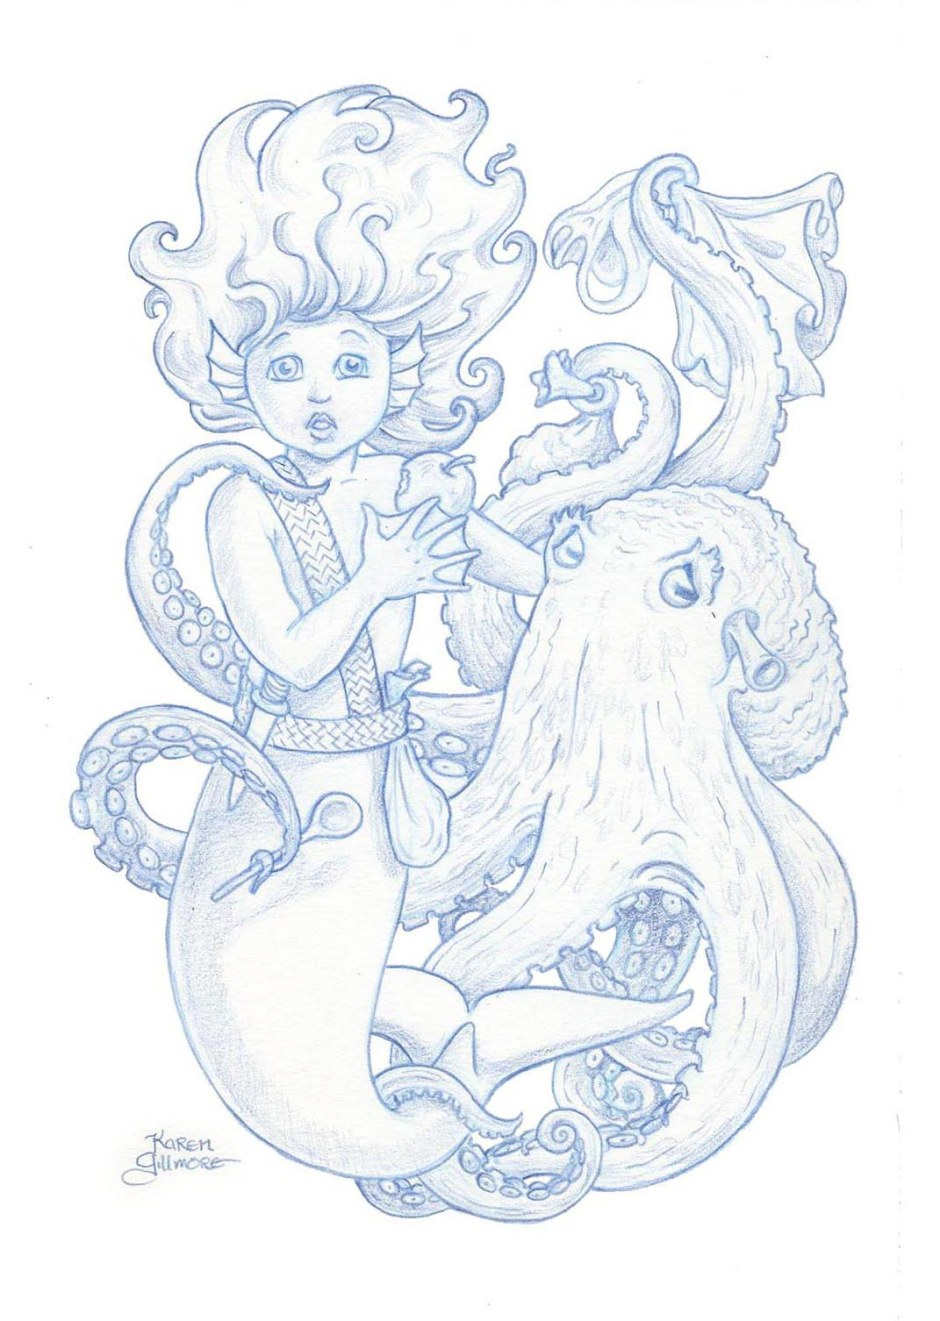 mermaid and octopus3.jpg